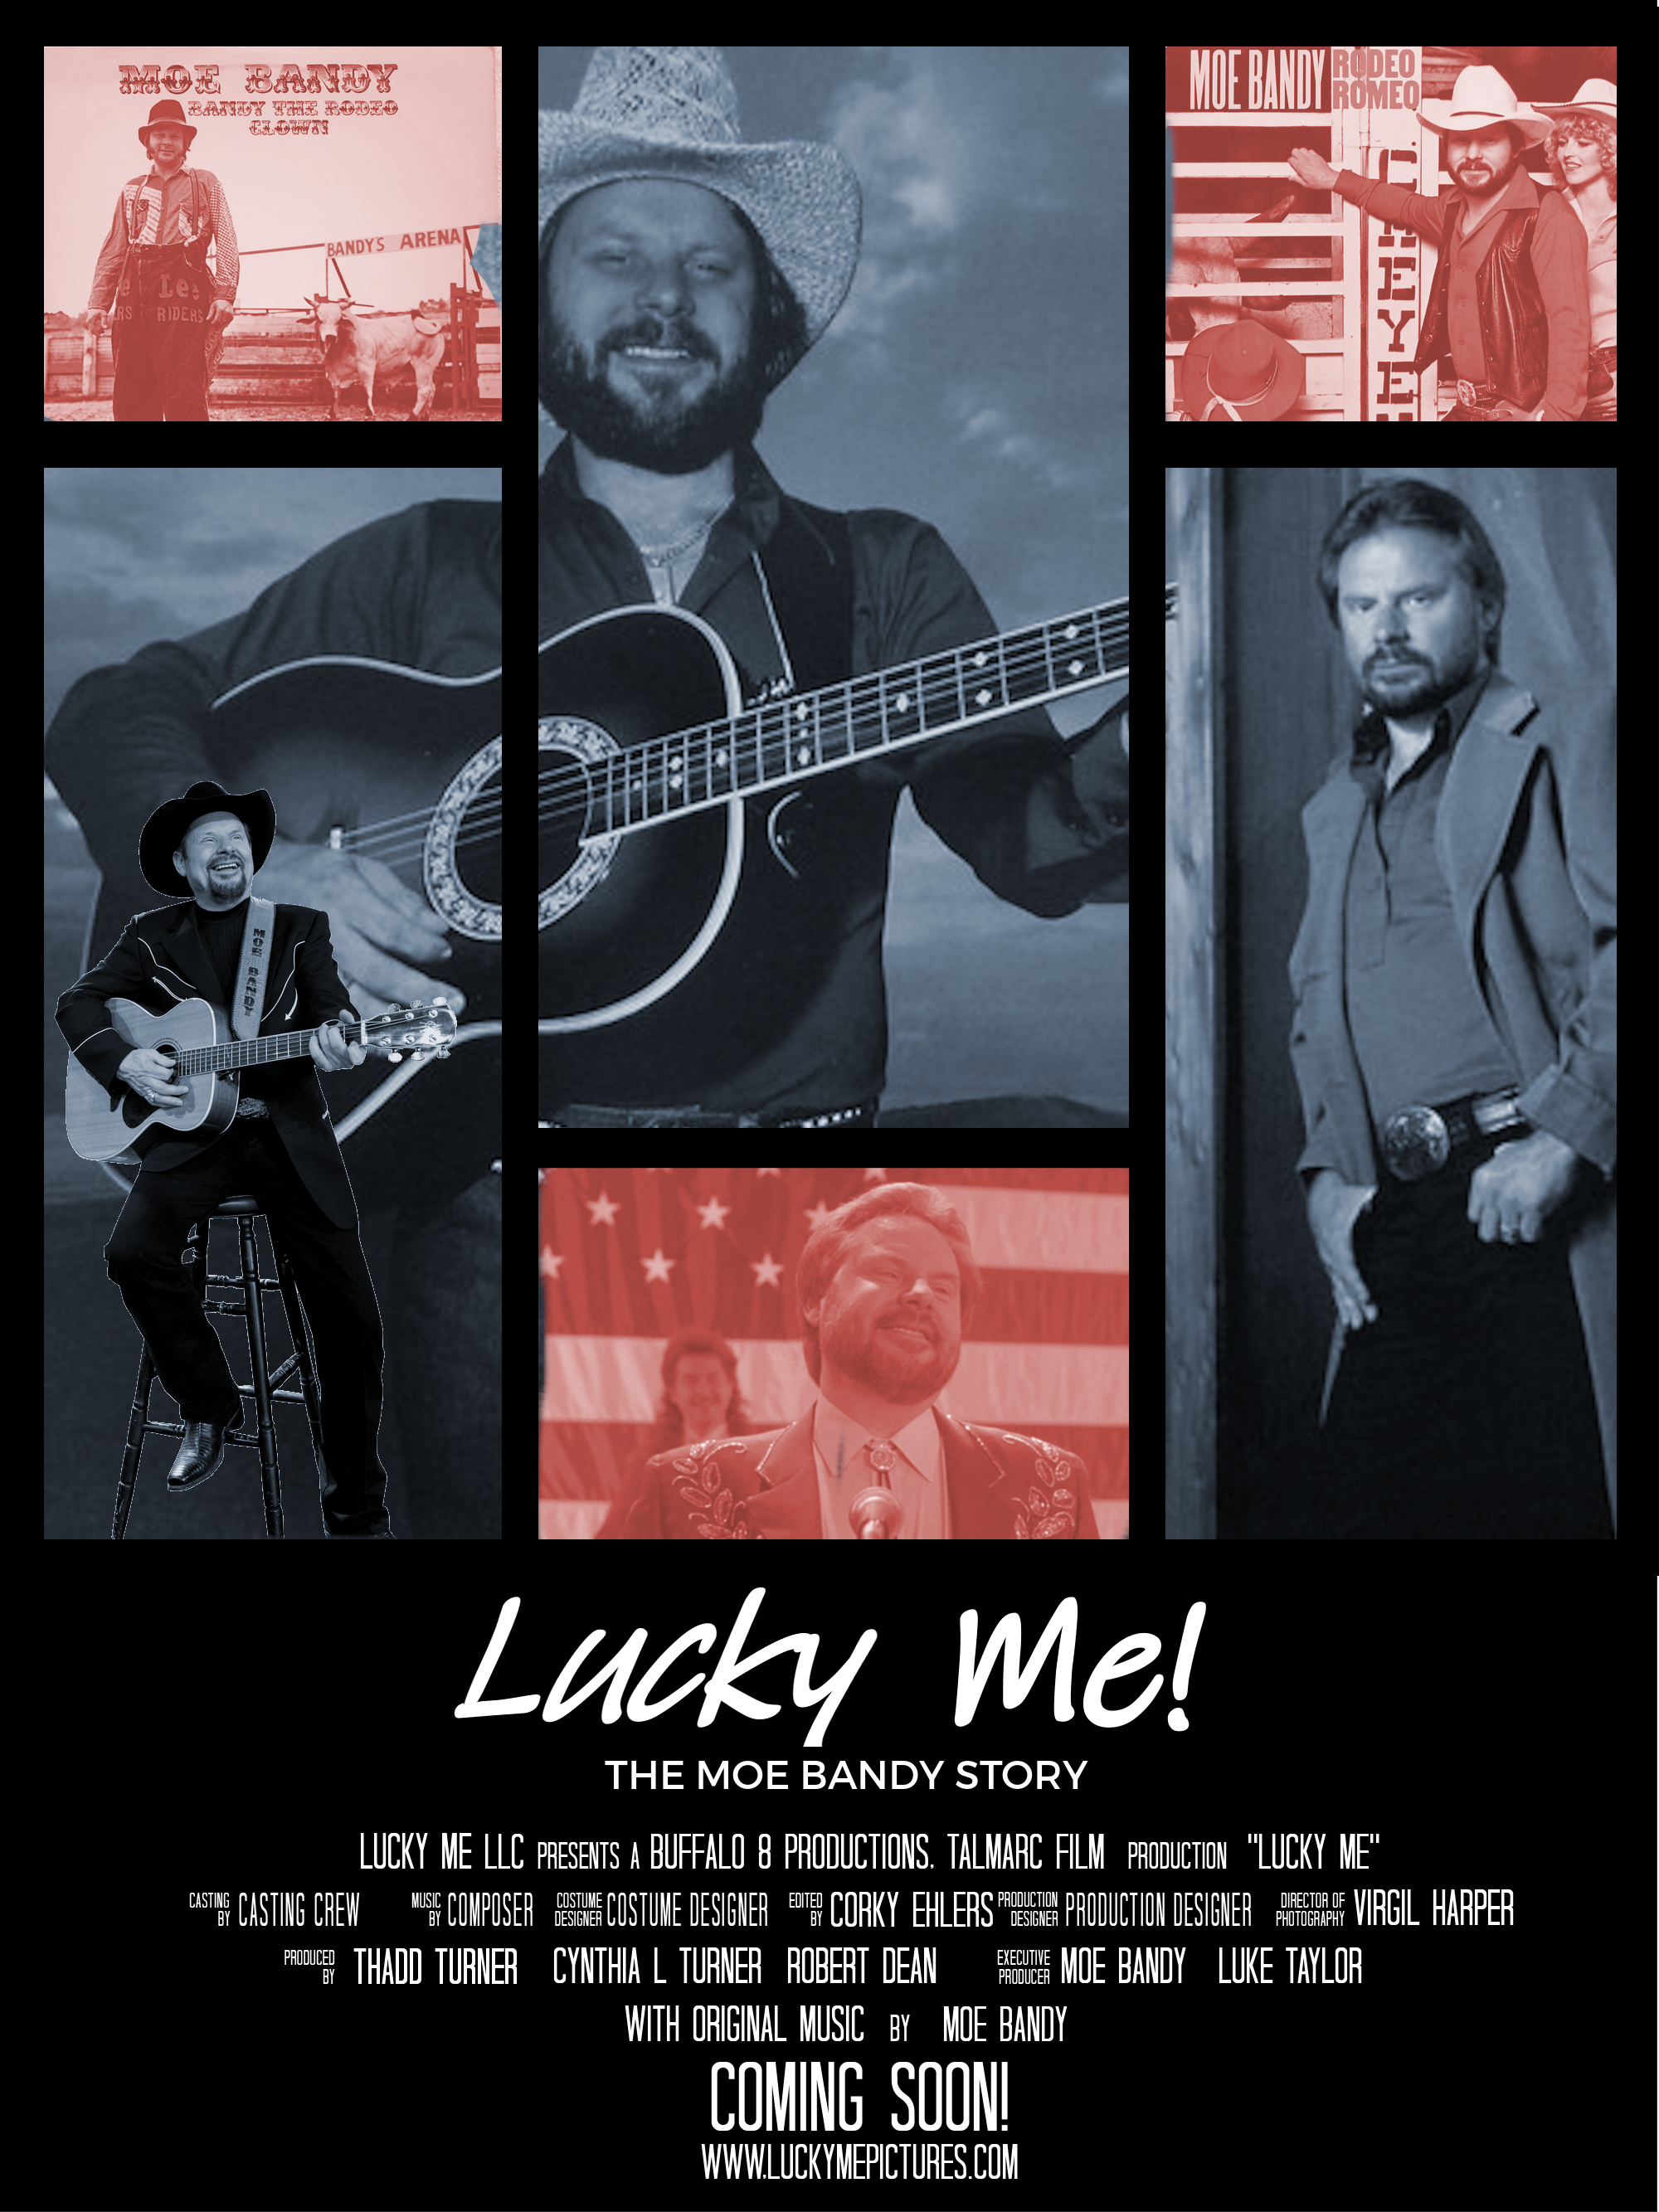 Lucky Me poster.4.16.20